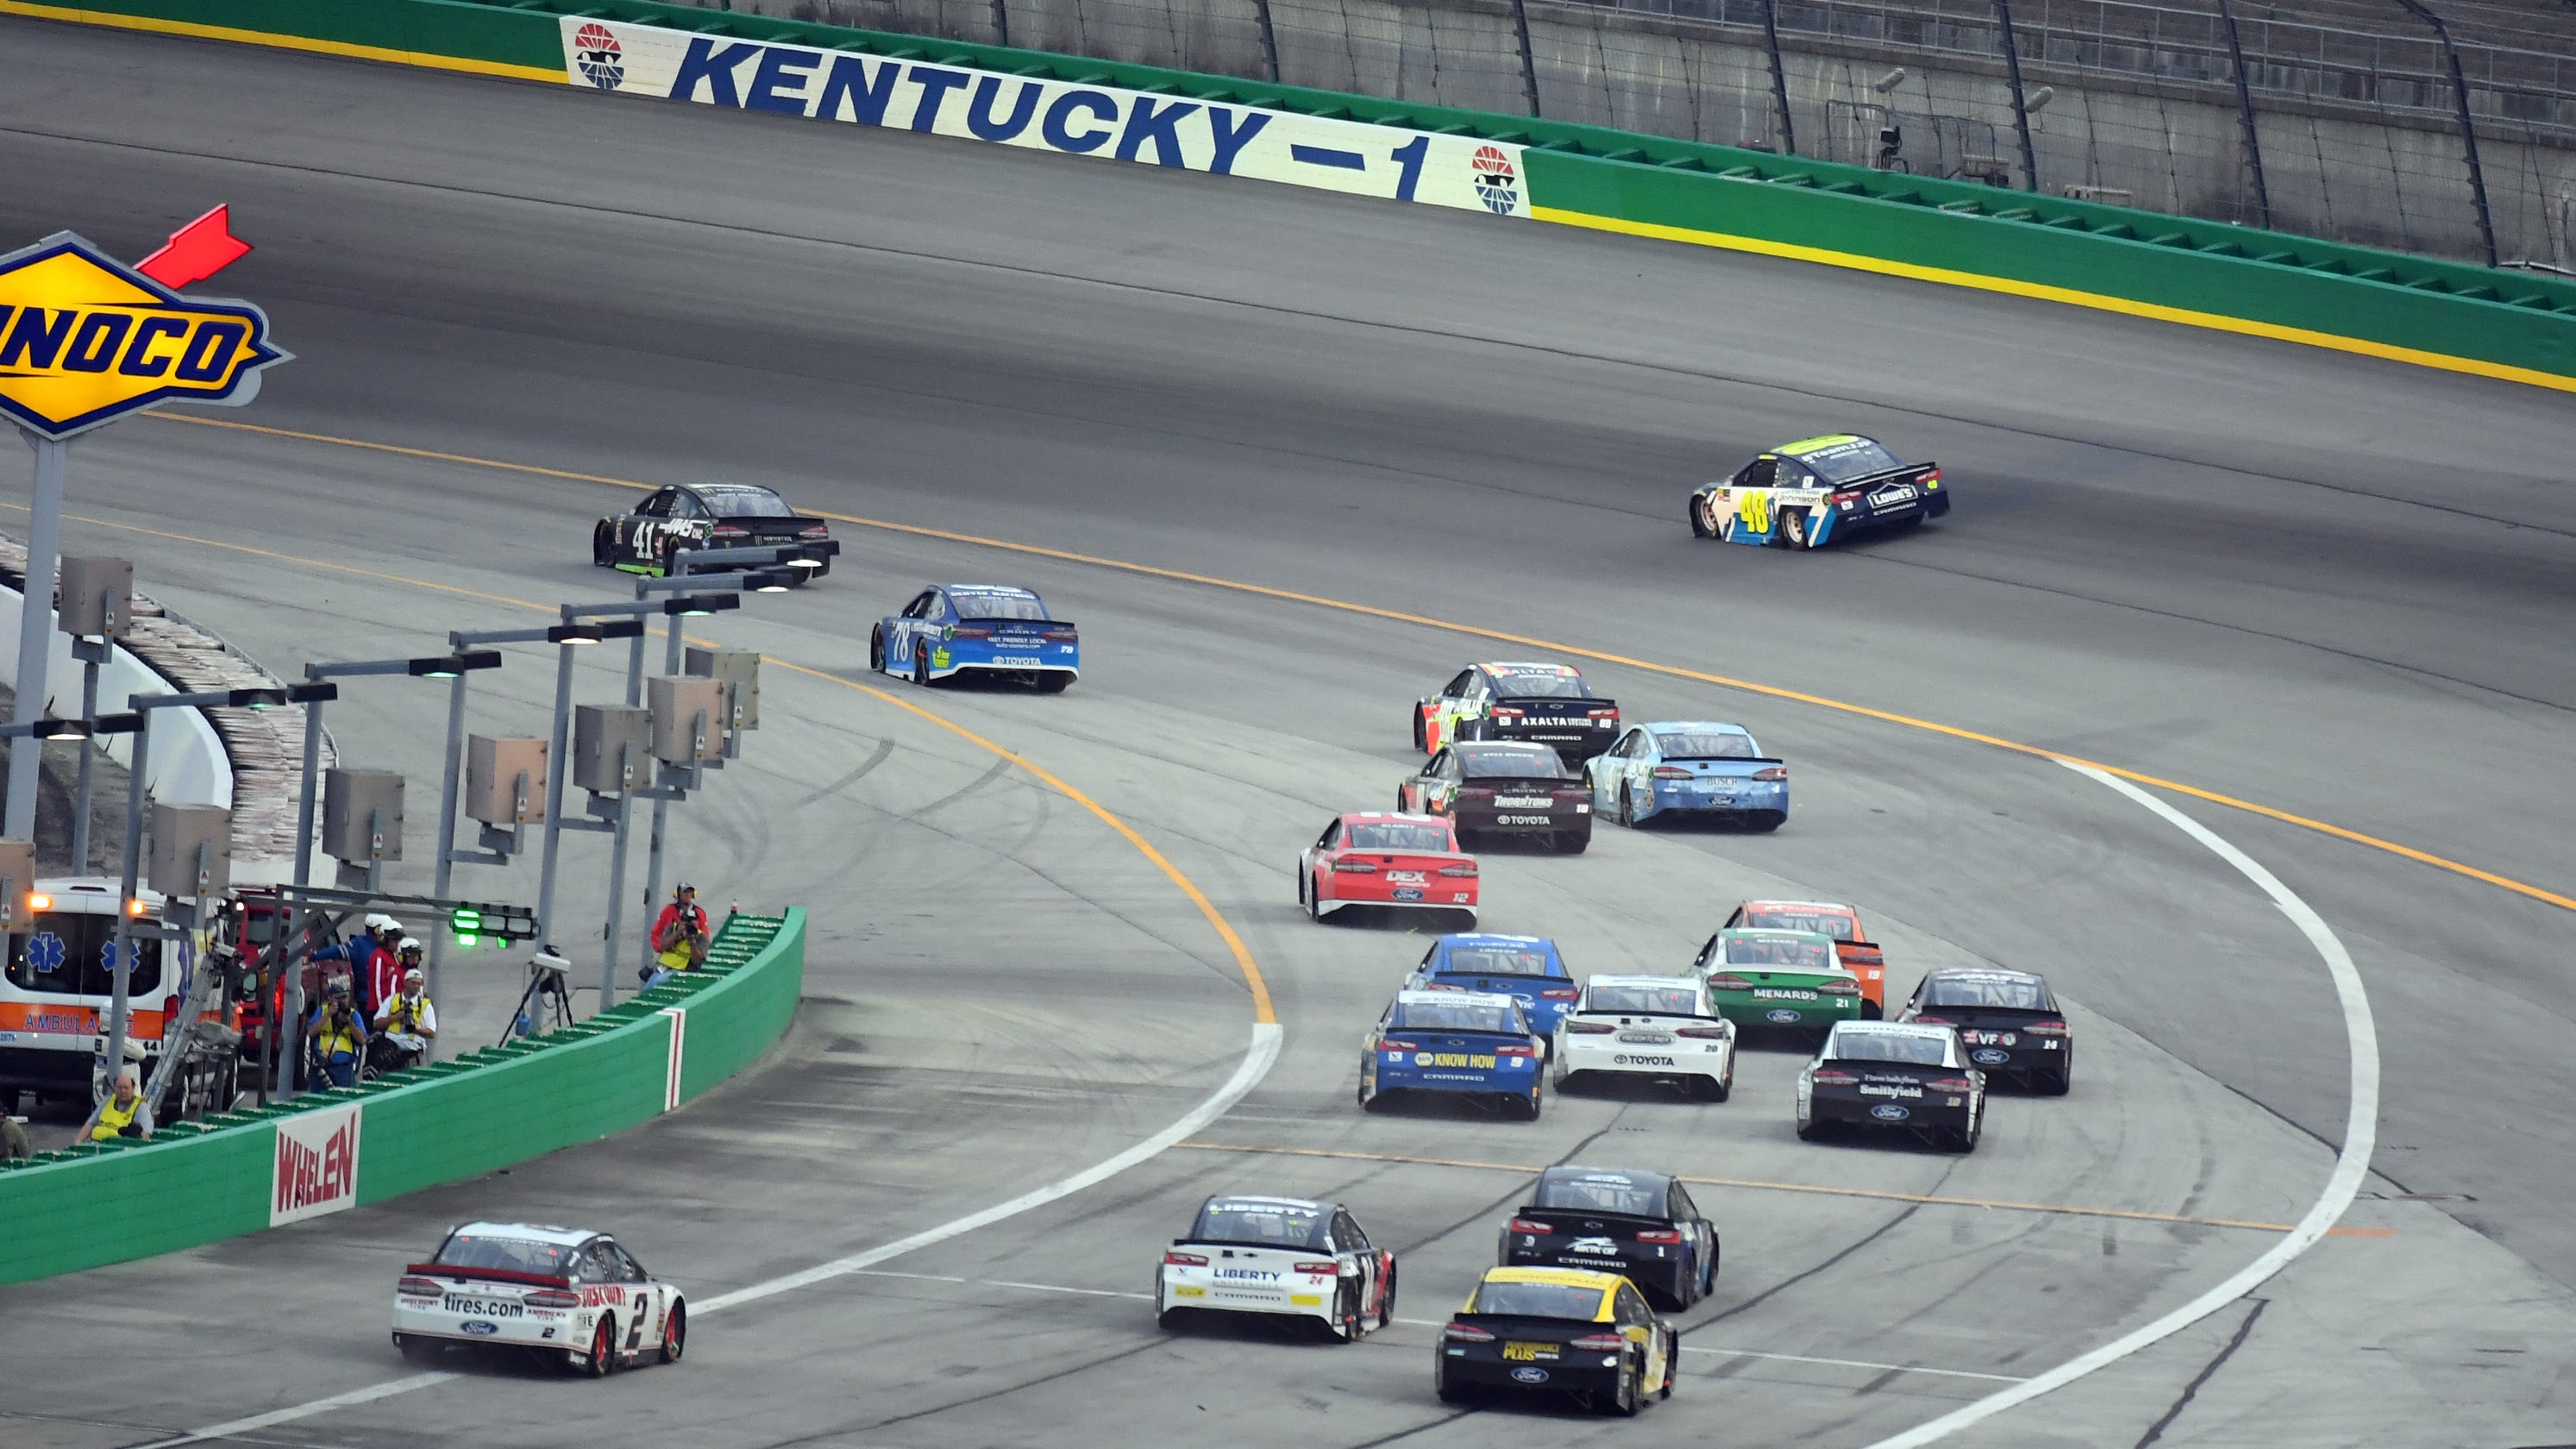 NASCAR at Kentucky: What time does the 2019 Cup race start